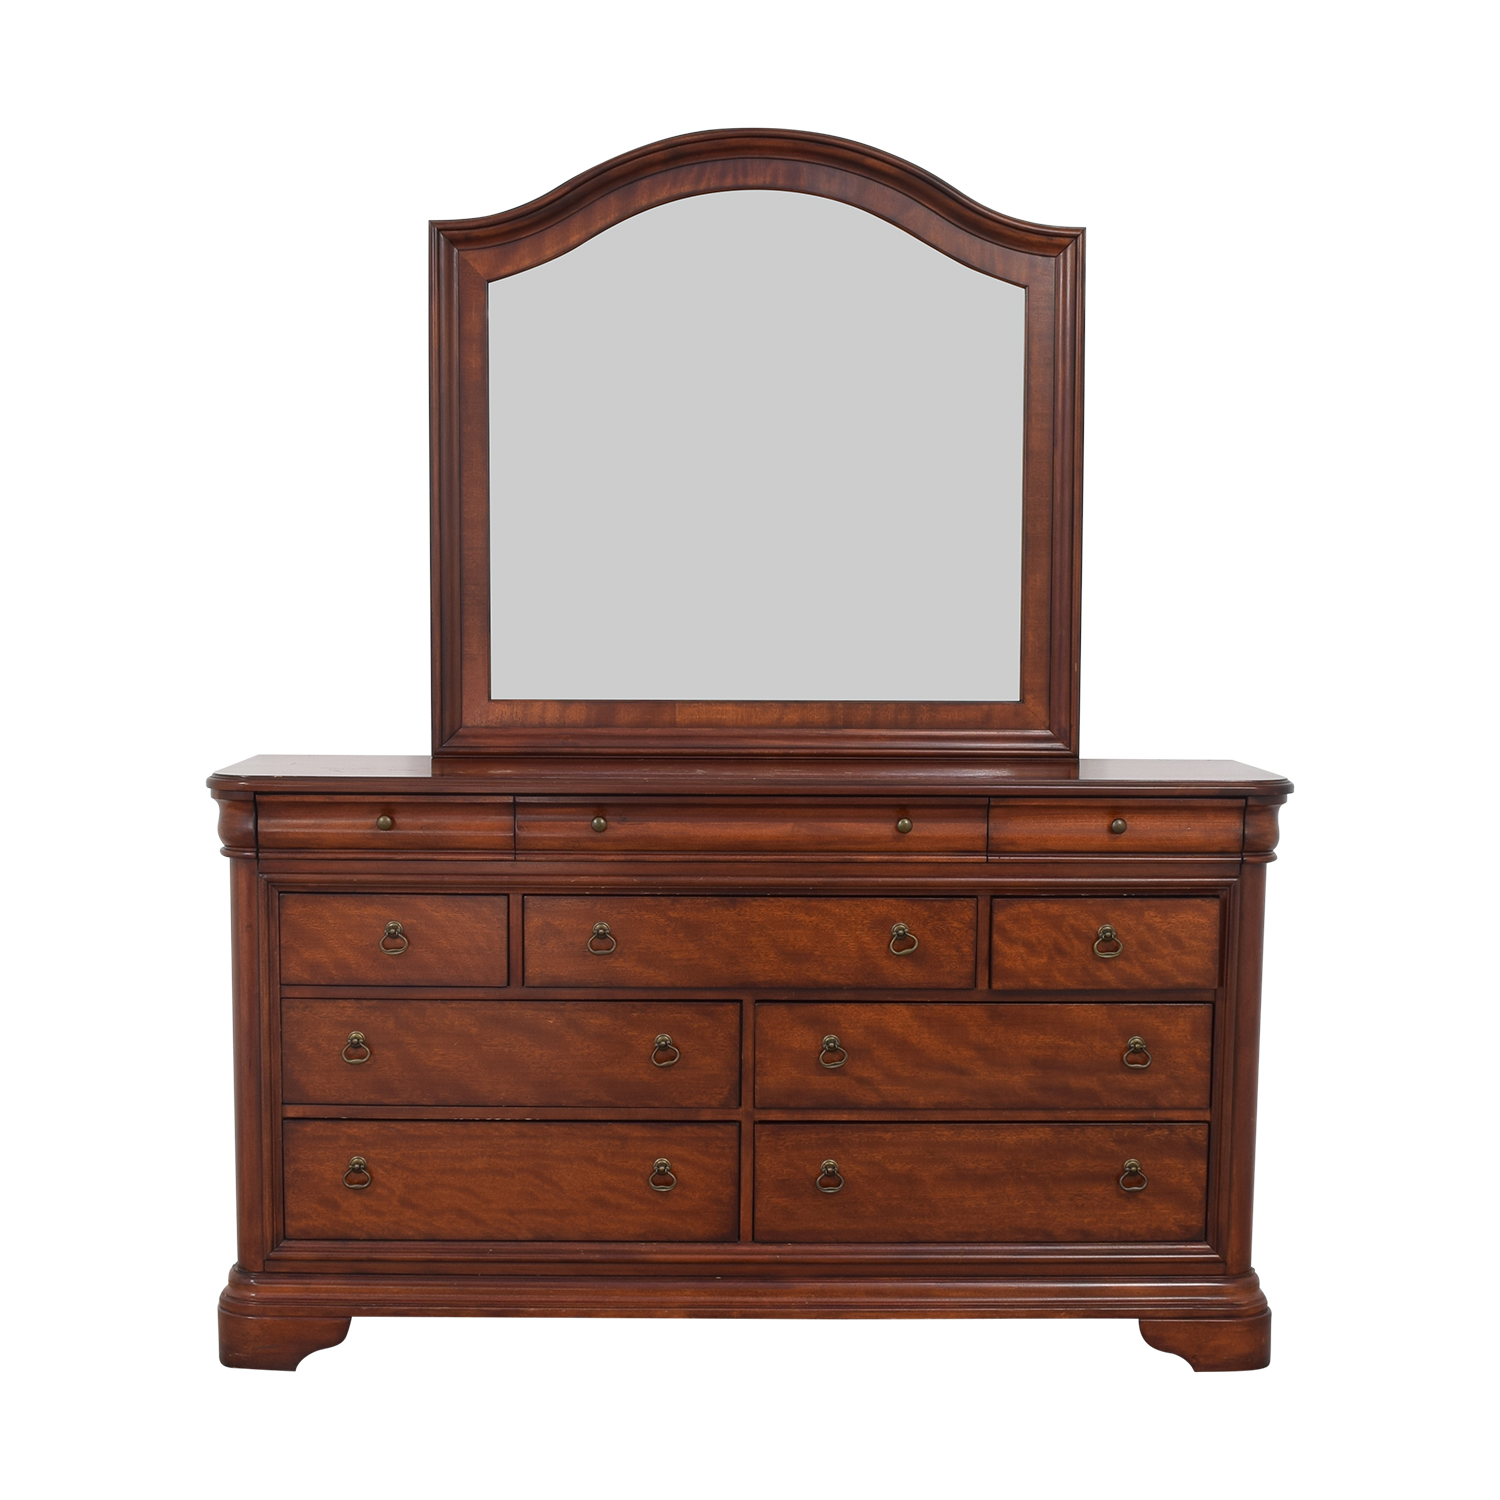 buy Macy's Bordeaux II Ten Drawer Dresser with Mirror Macy's Storage